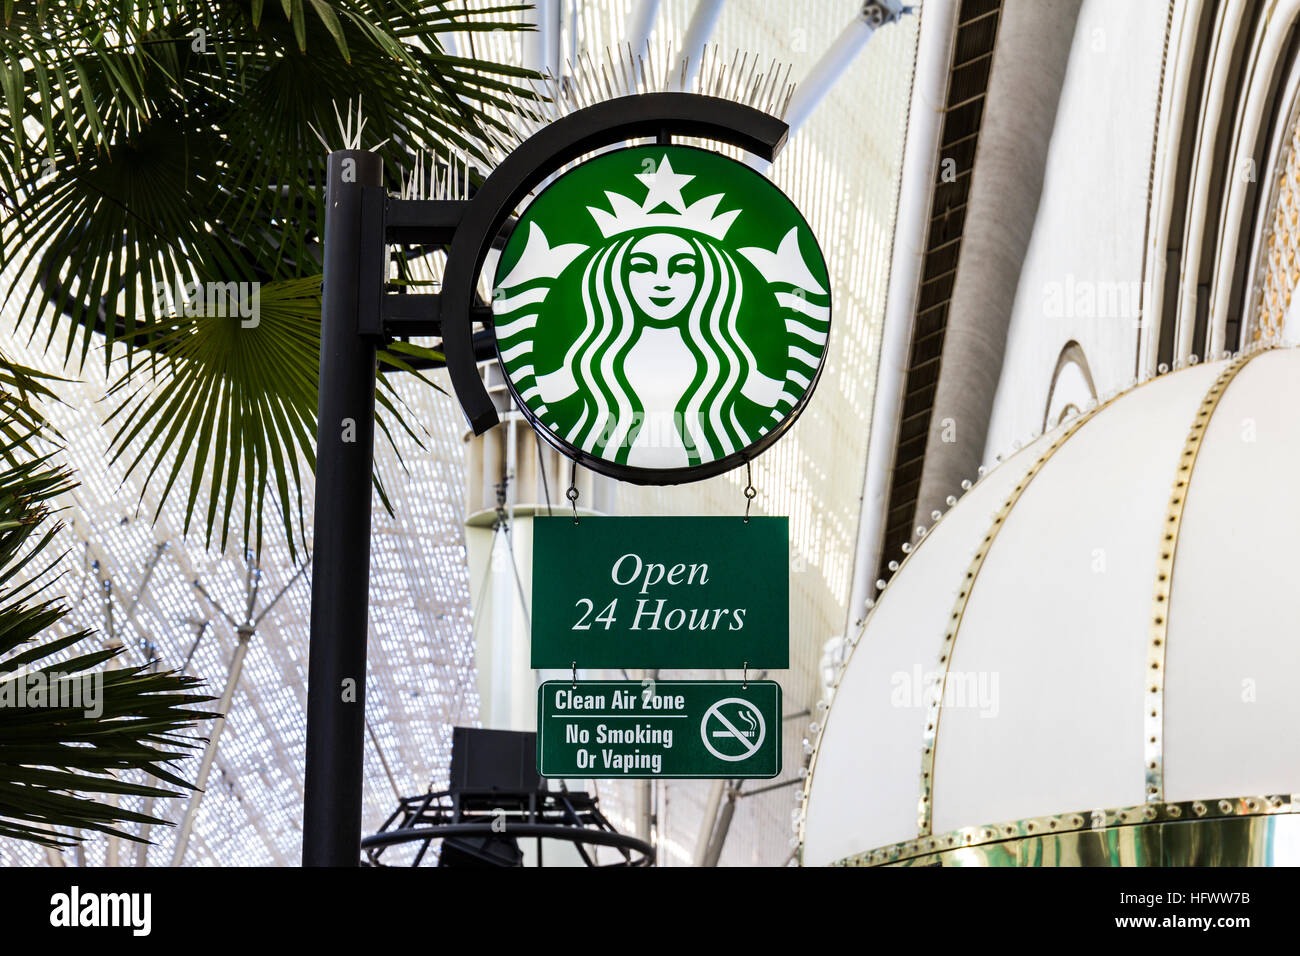 Las Vegas - Circa December 2016: Starbucks Retail Coffee Store. Starbucks is an American Retail Coffee Chain IX - Stock Image